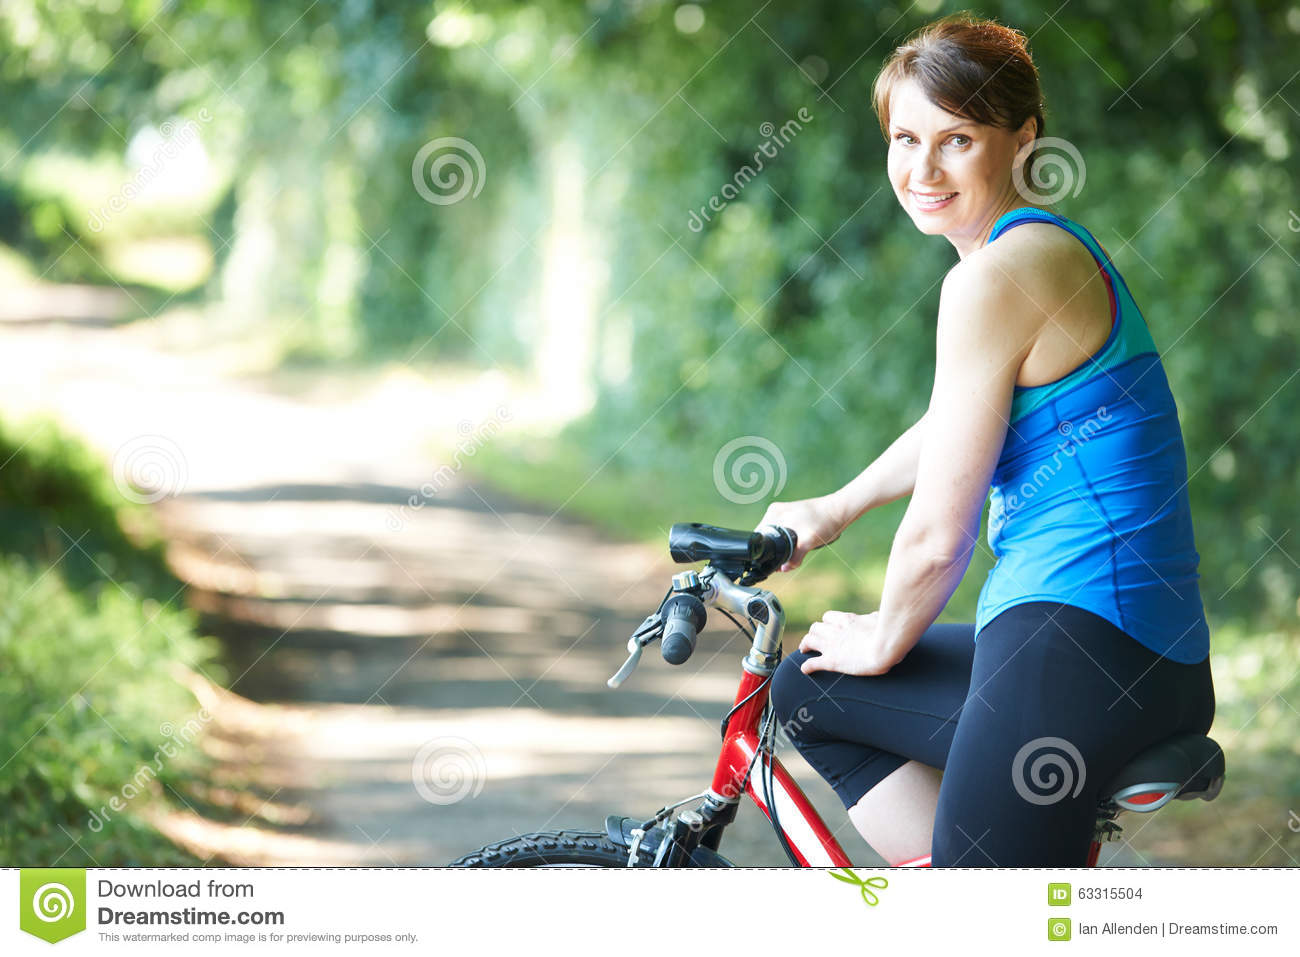 middle aged woman cycling along country road stock photo - image of